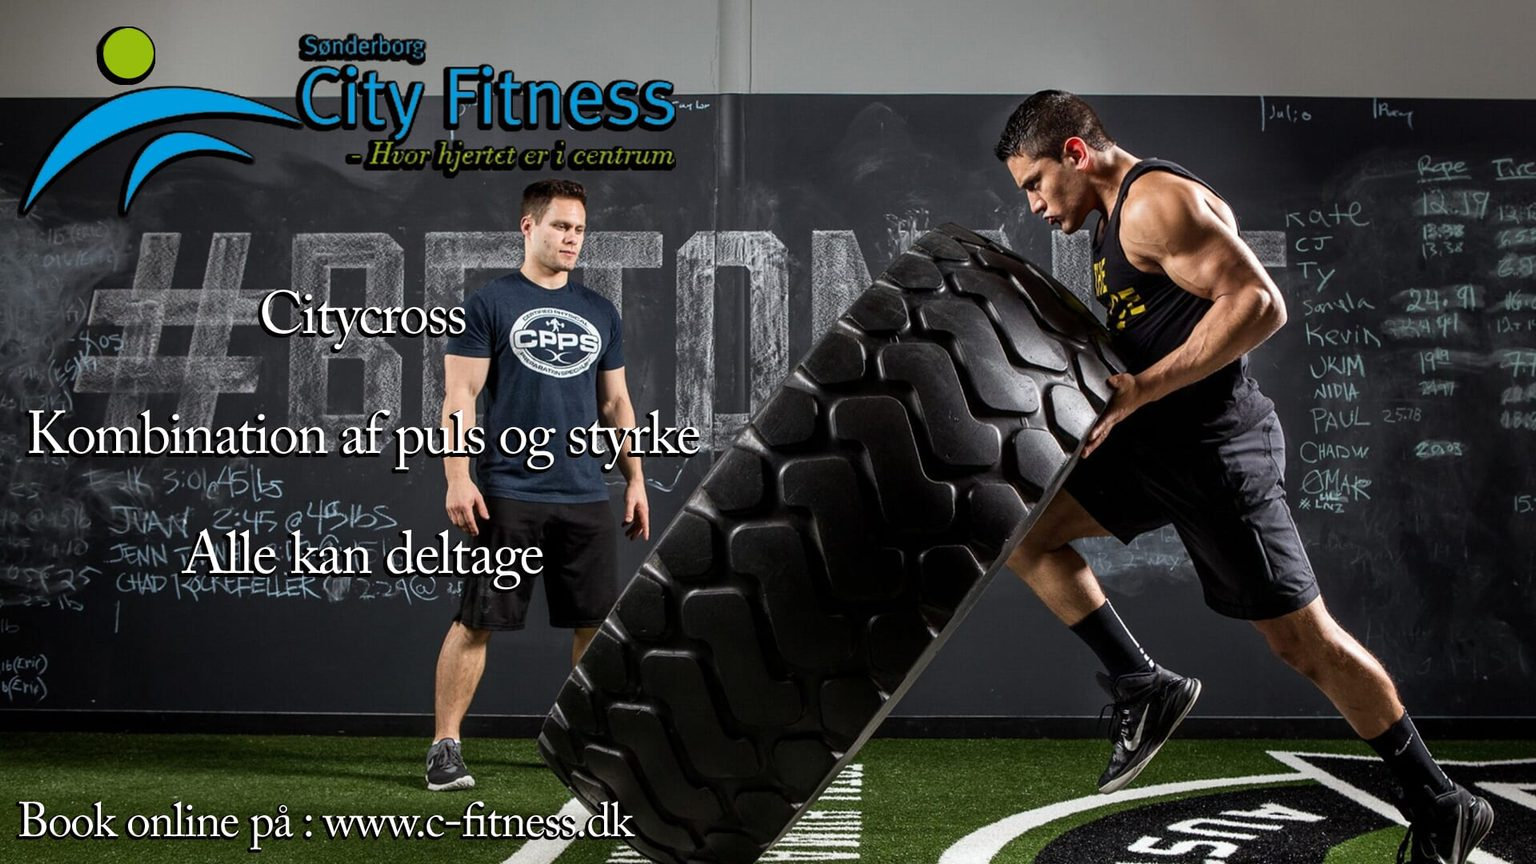 Photo from Sønderborg City Fitness